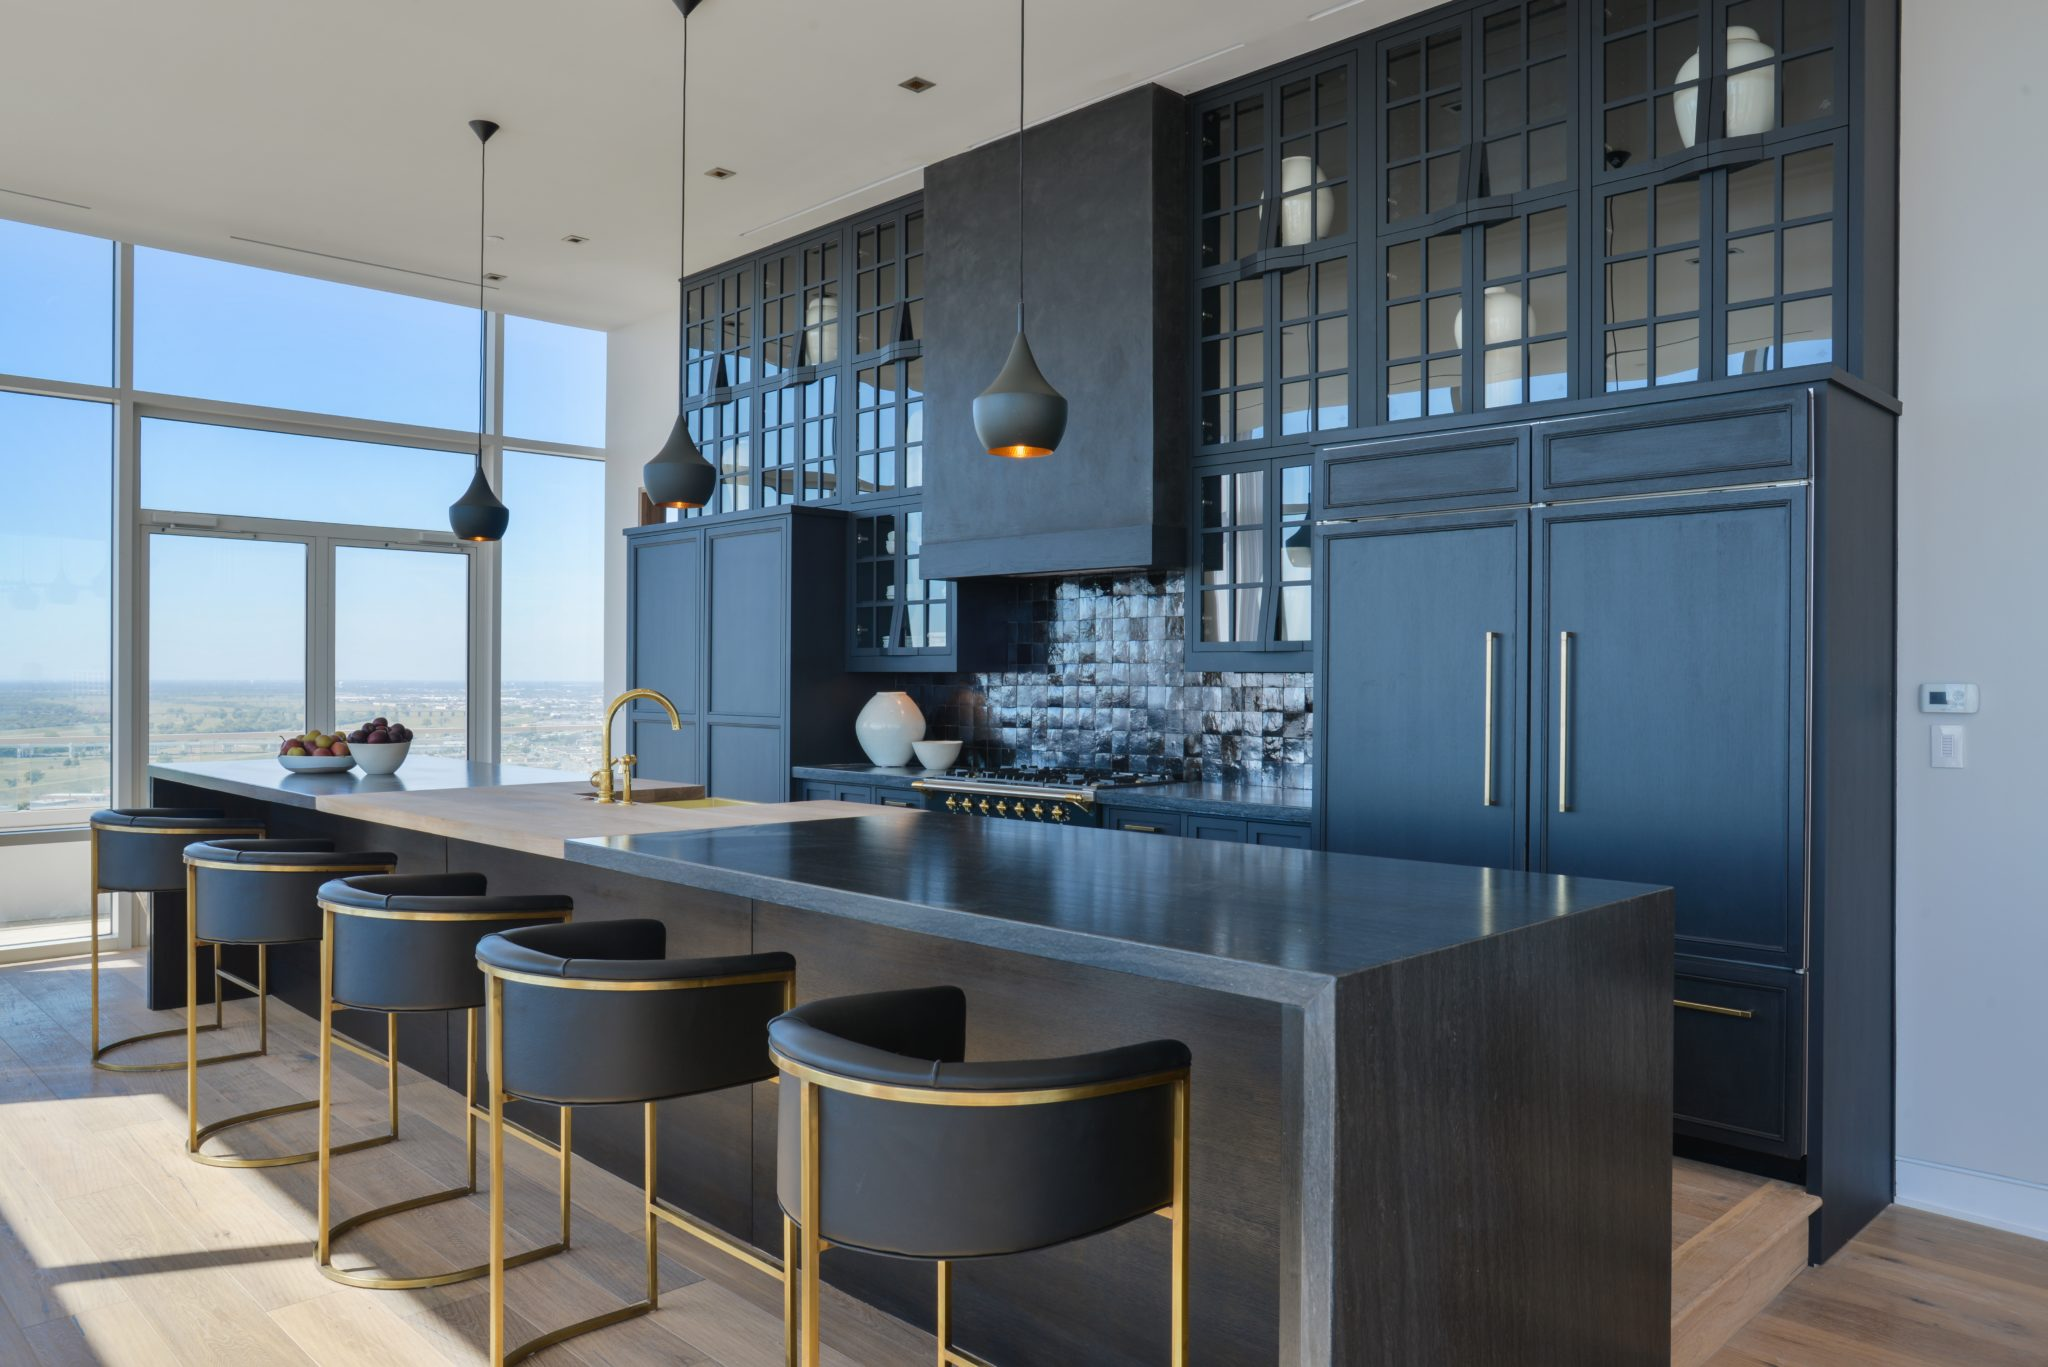 A chic penthouse kitchen in black and gold by Ohara Davies-Gaetano